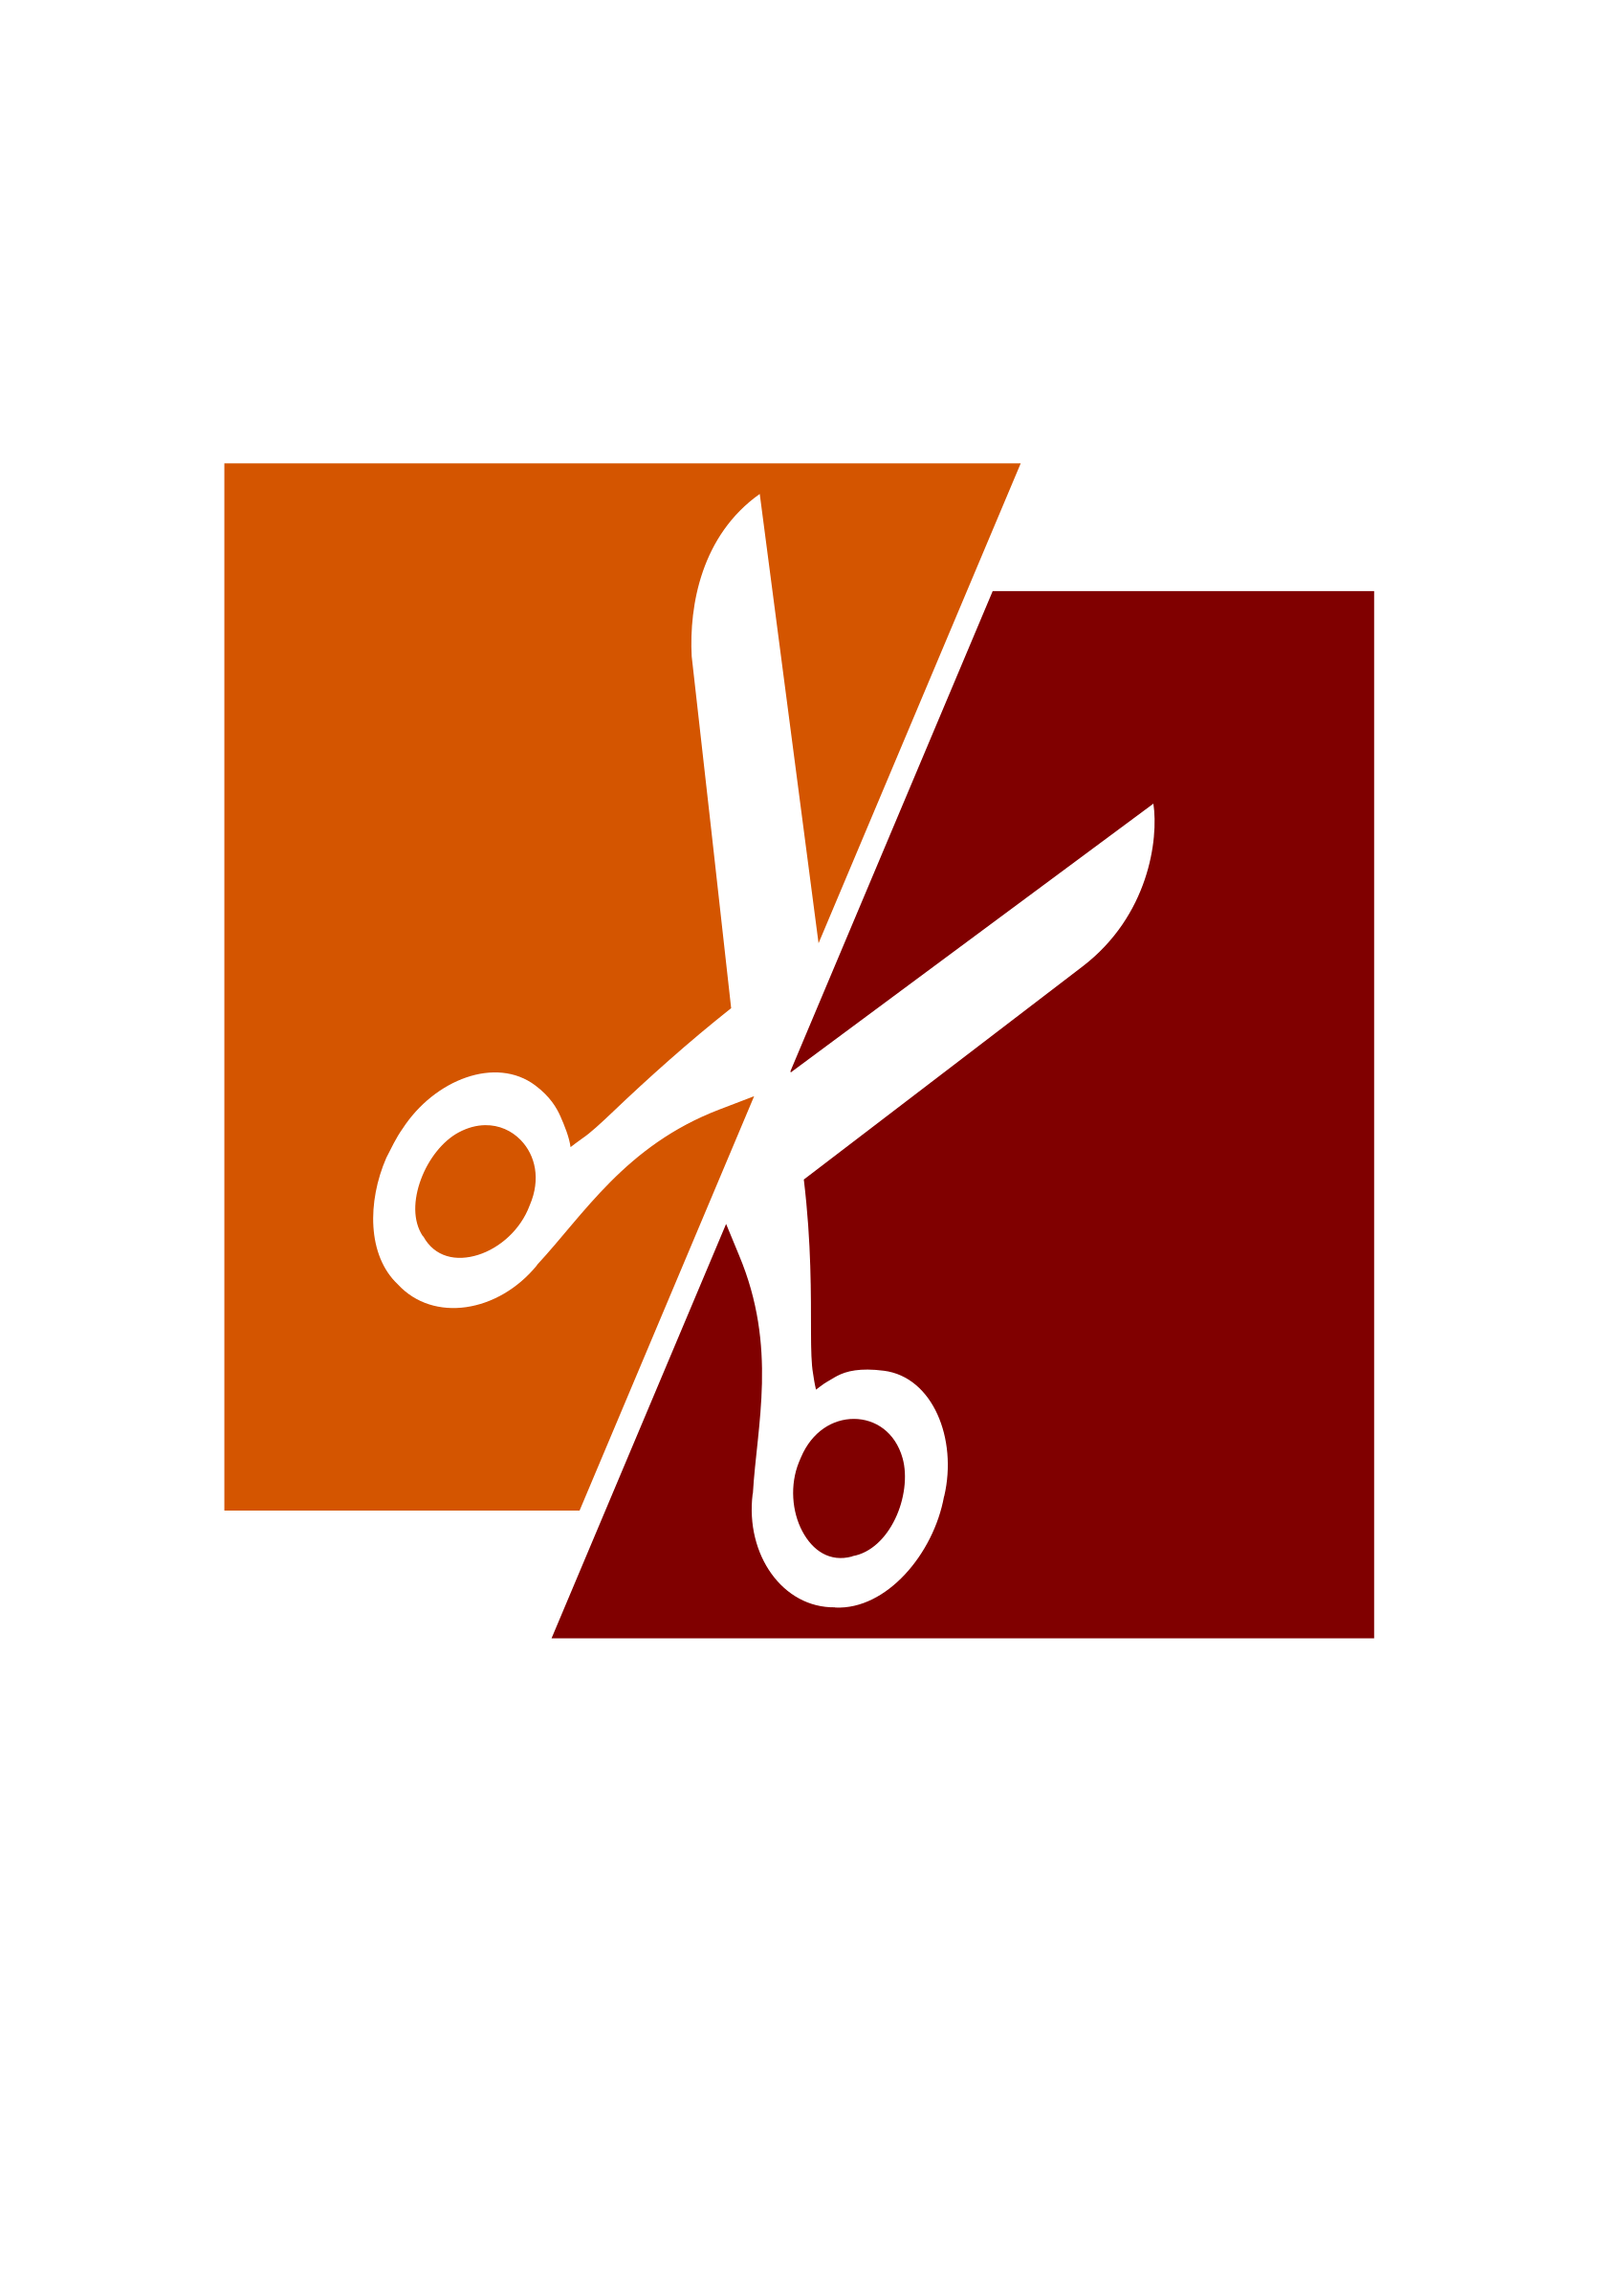 Split scissors by ejmillan